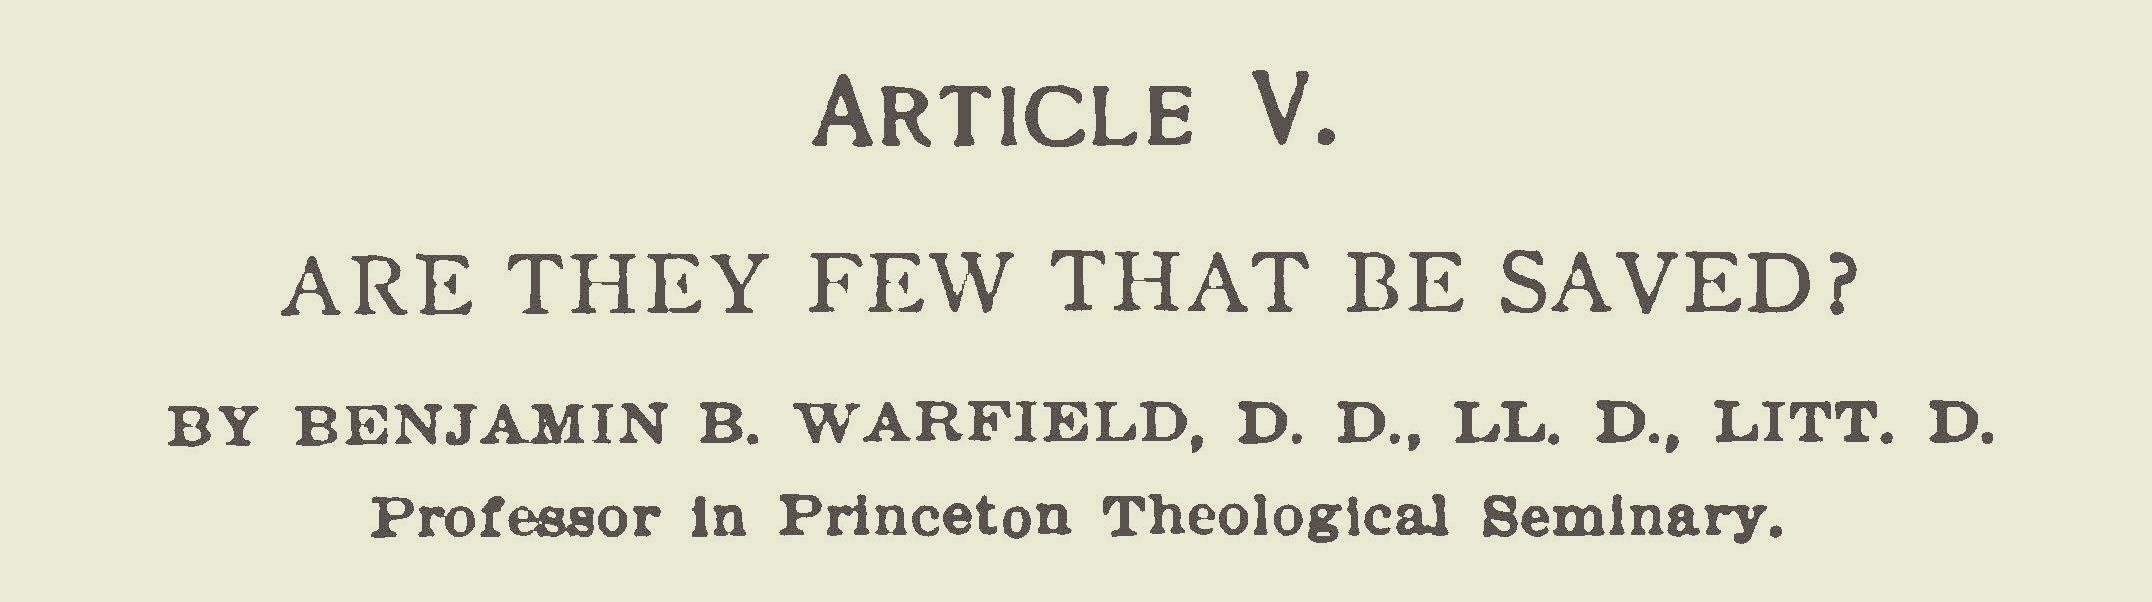 Warfield, Benjamin Breckinridge, Are They Few That Be Saved Title Page.jpg